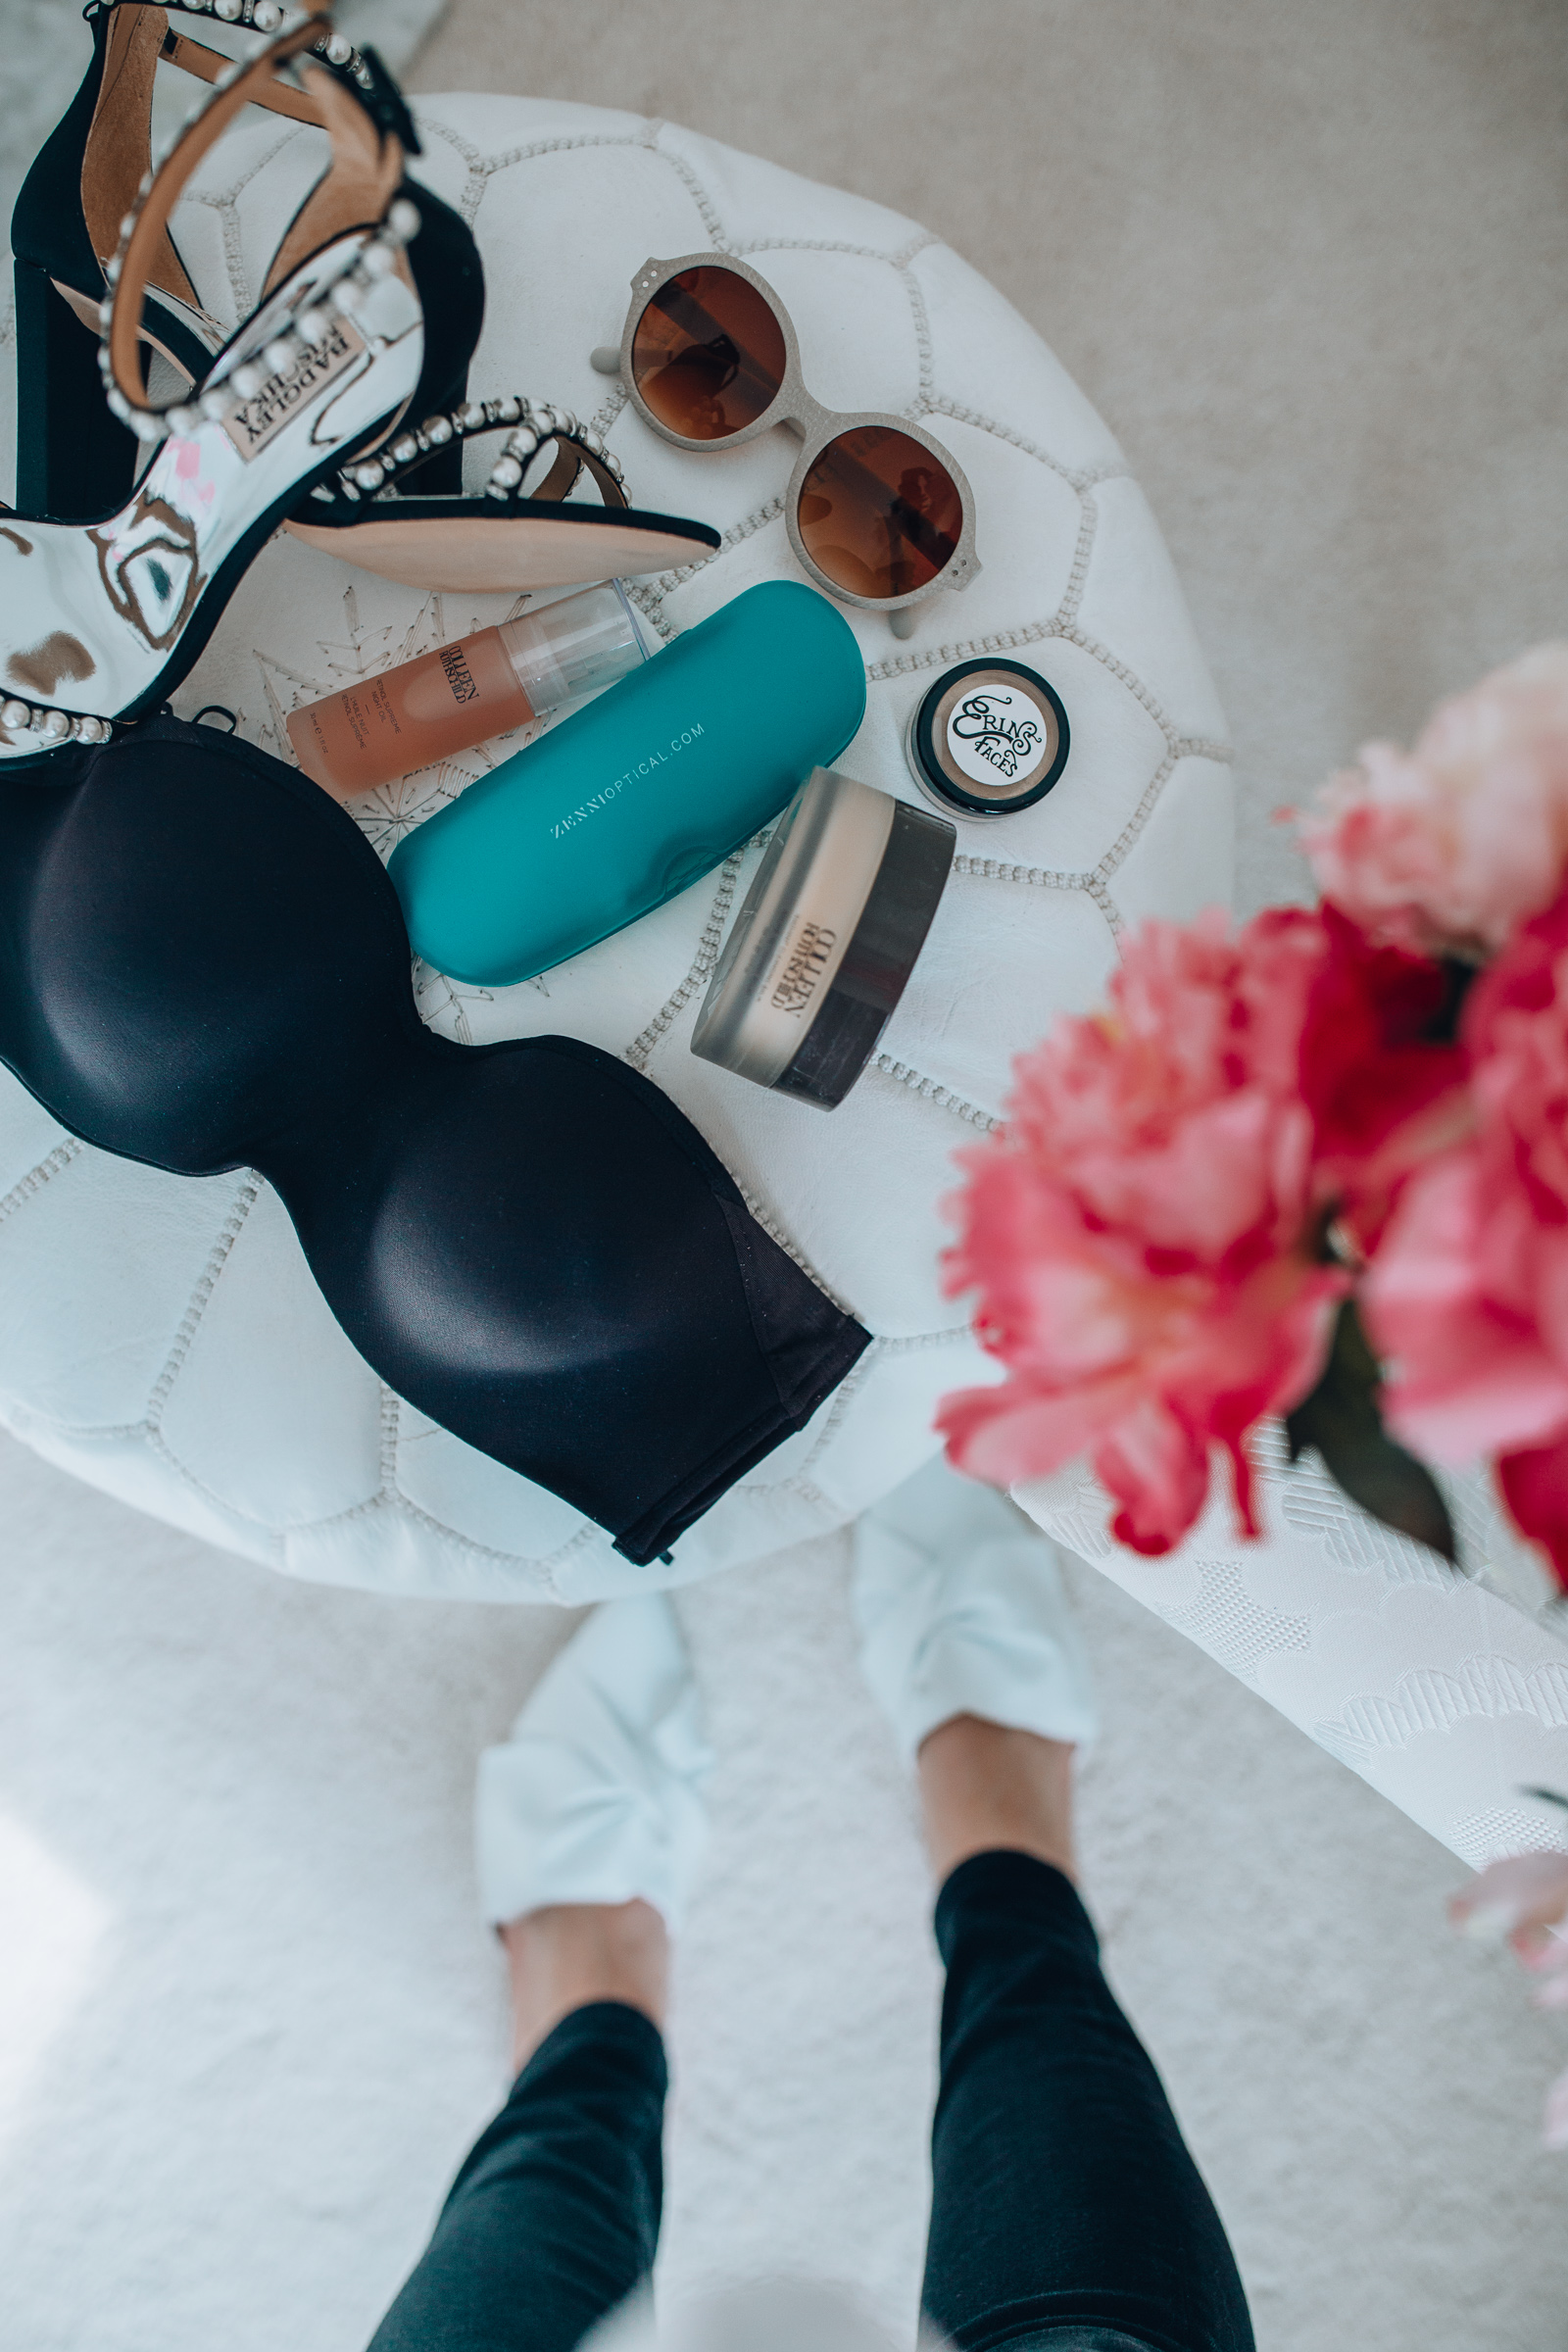 Chicago style blogger shares 6 spring items that shes currently loving, including: rothschild beauty, badgley mischka pearl shoes, vegan makeup & more!